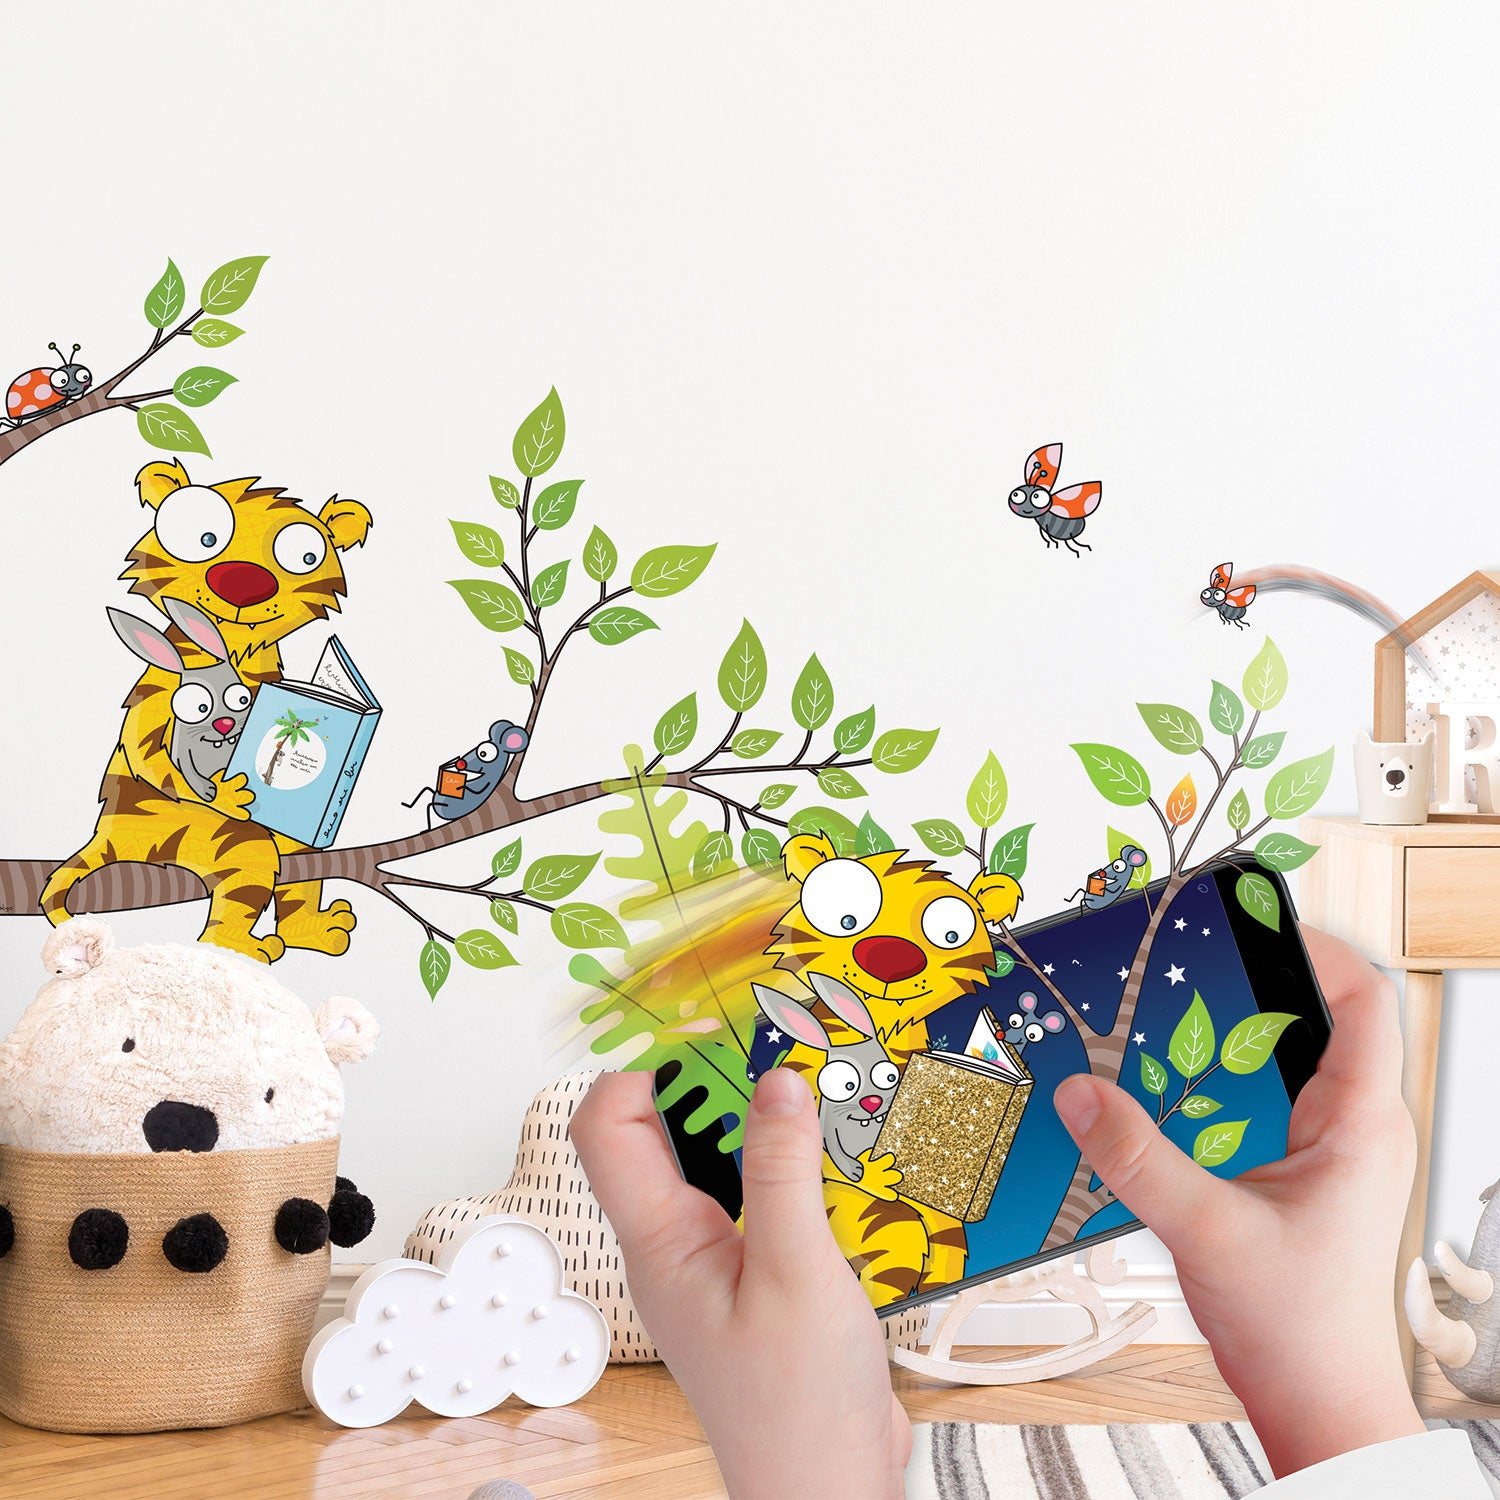 Interactive Room Decor - Wall Stories